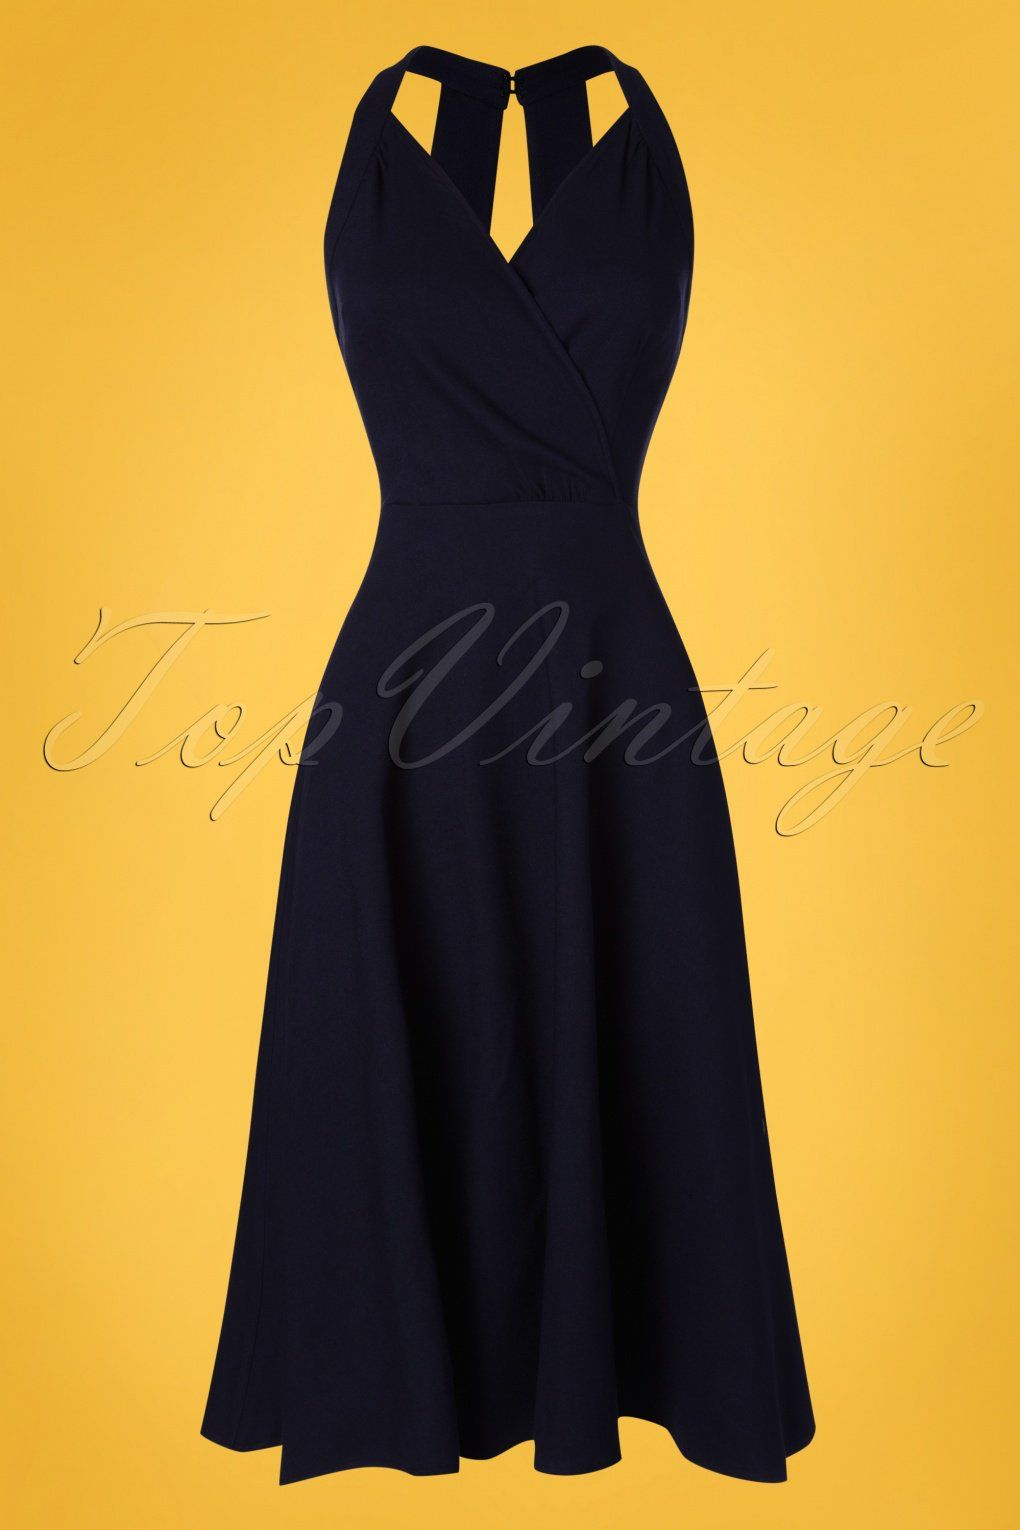 50s hadley plain swing dress in navy | geschwungenes kleid